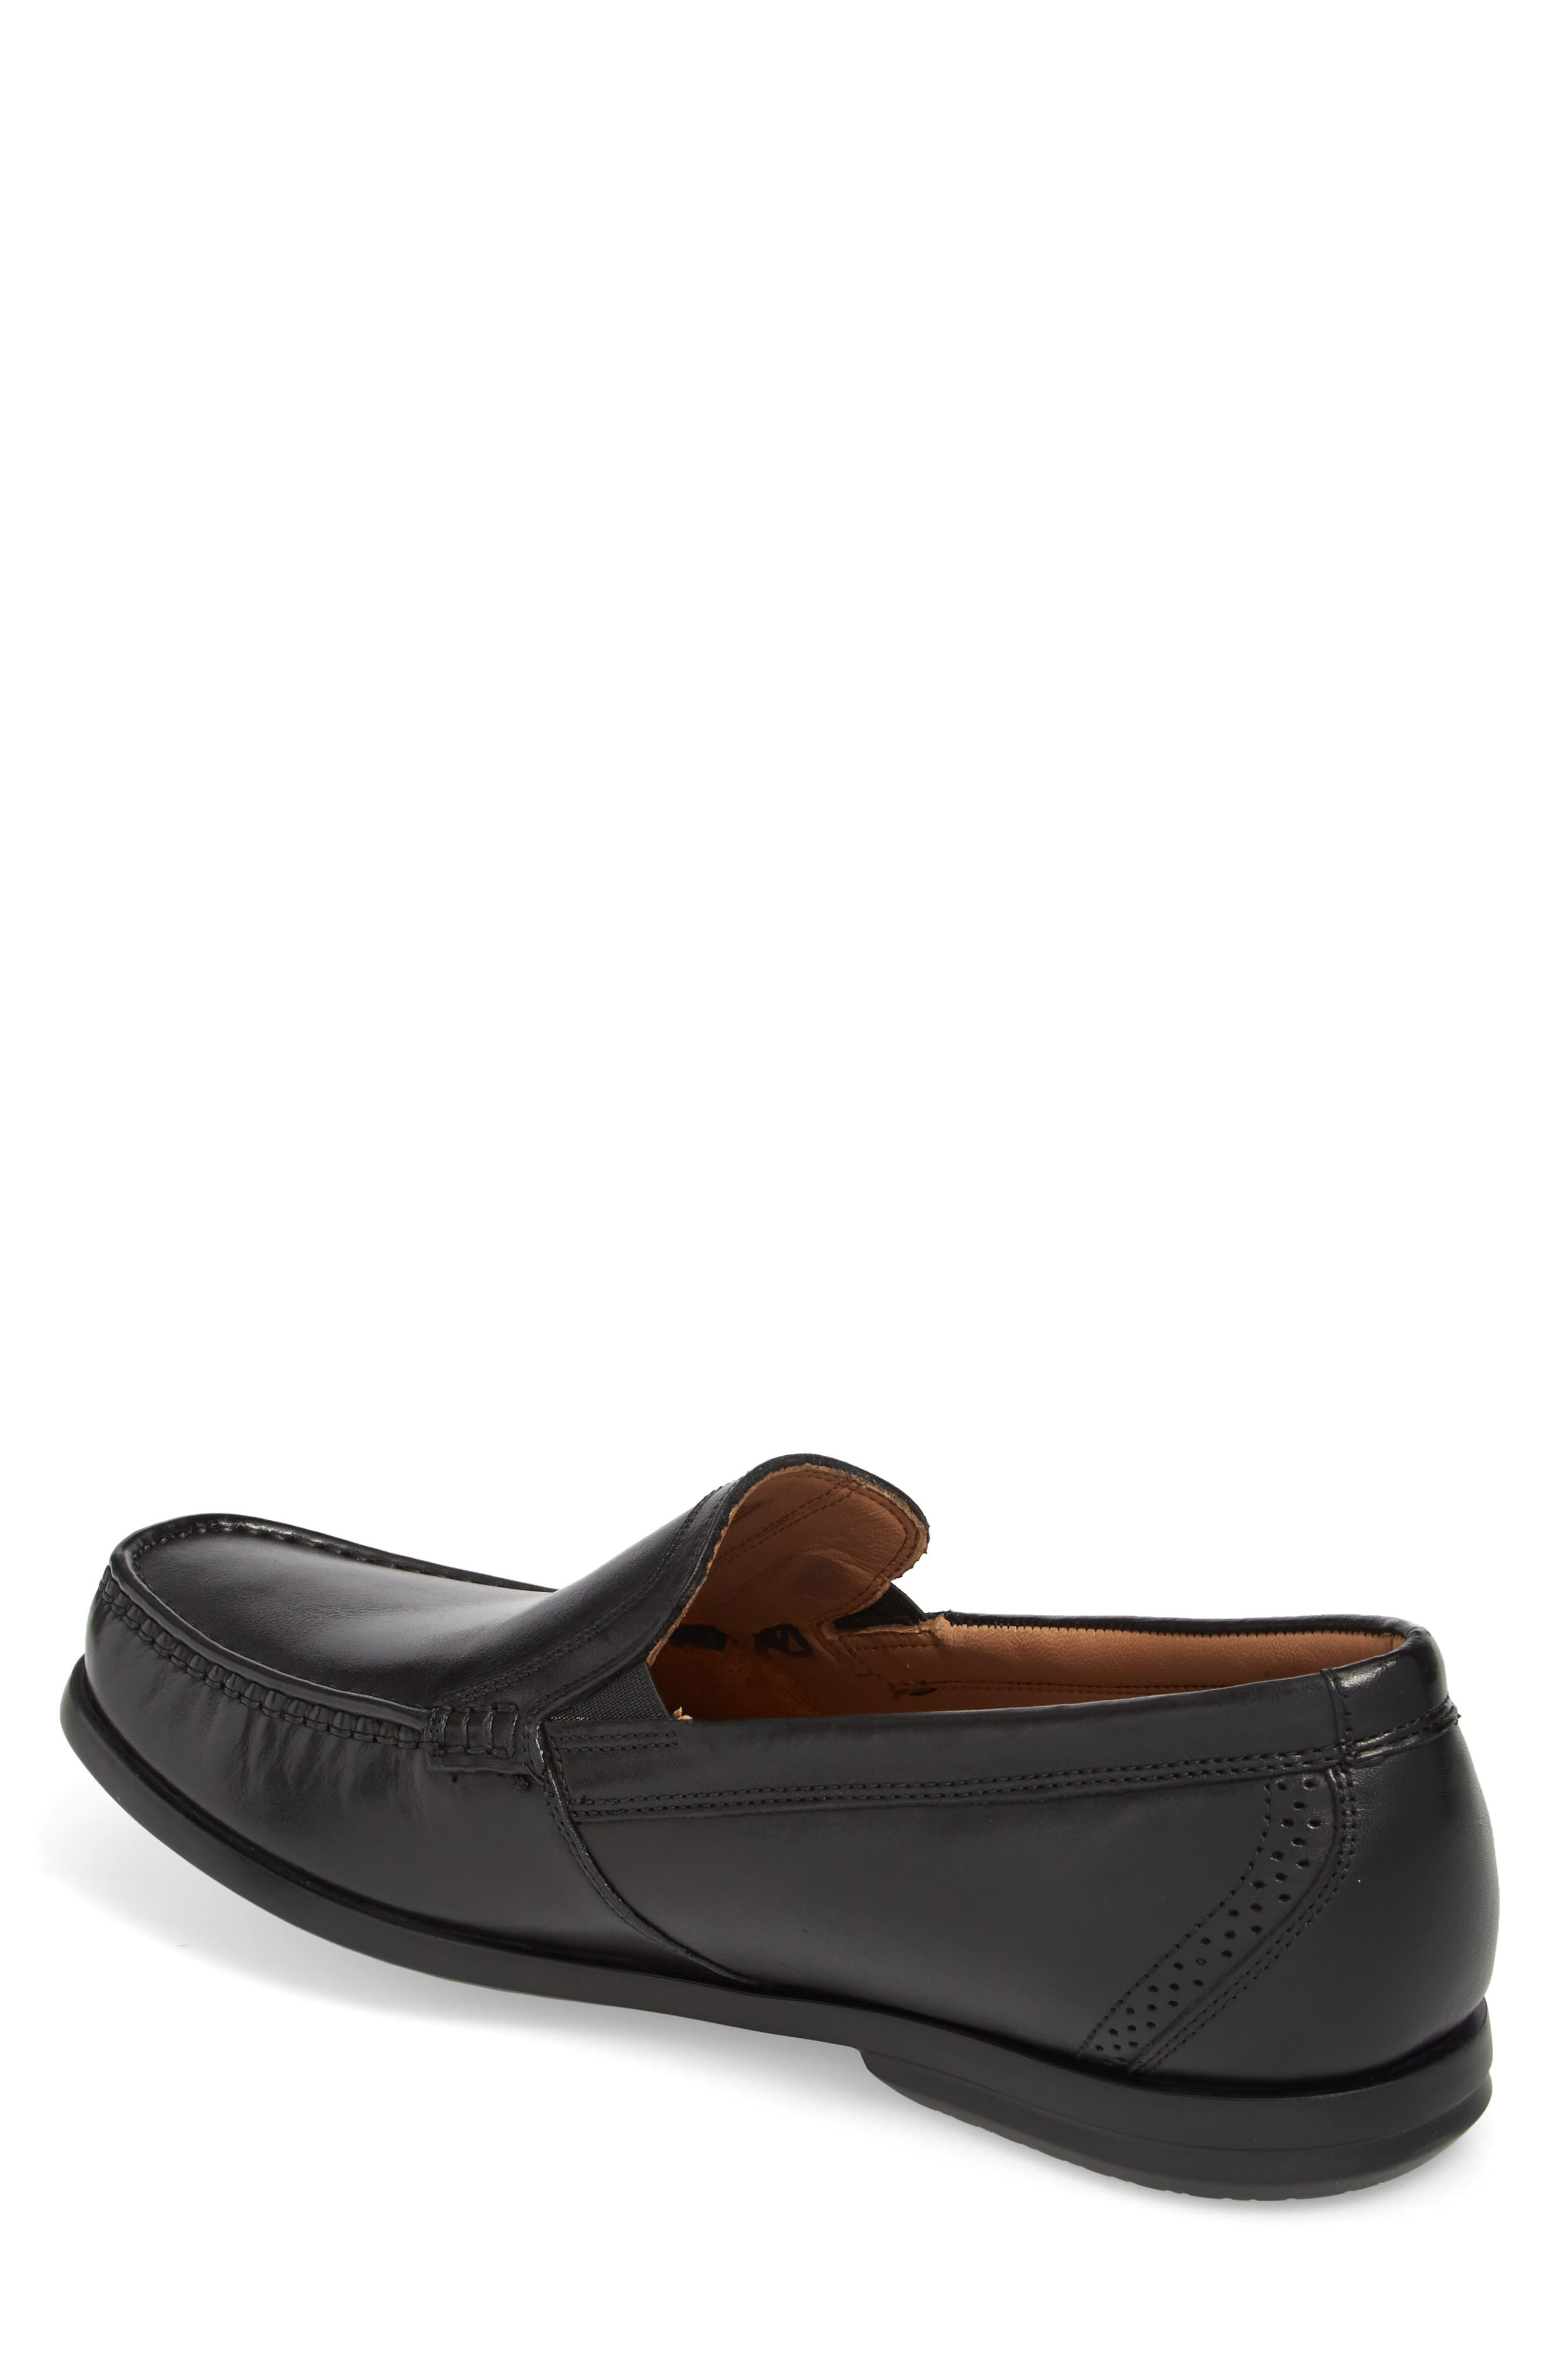 Clarks<sup>®</sup> Ungala Free Venetian Loafer,                             Alternate thumbnail 2, color,                             Black Leather